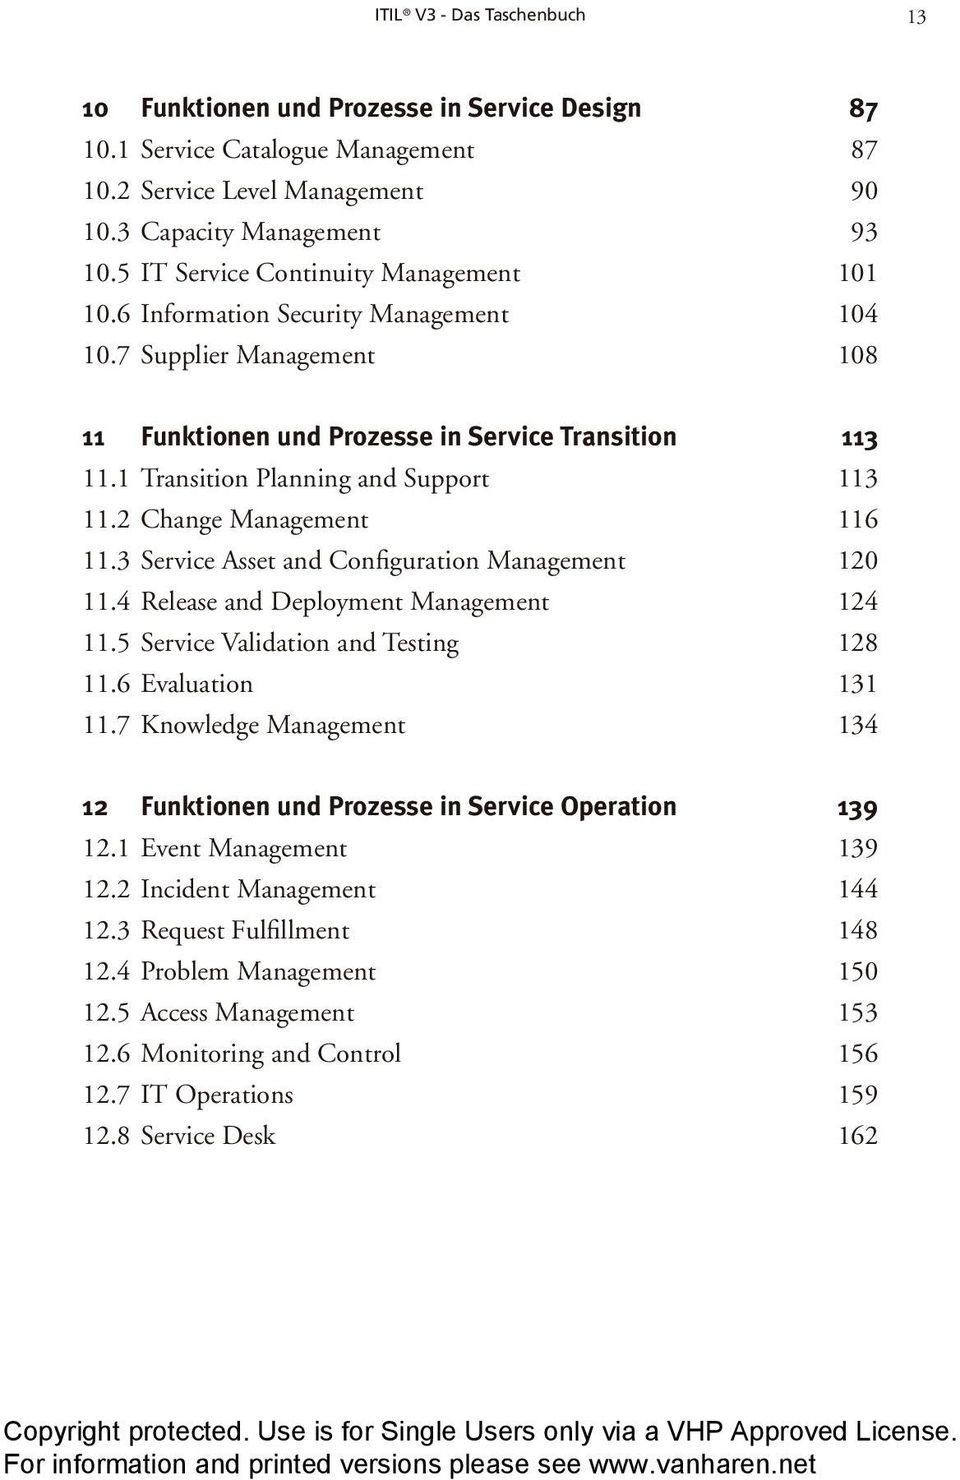 1 Transition Planning and Support 113 11.2 Change Management 116 11.3 Service Asset and Configuration Management 120 11.4 Release and Deployment Management 124 11.